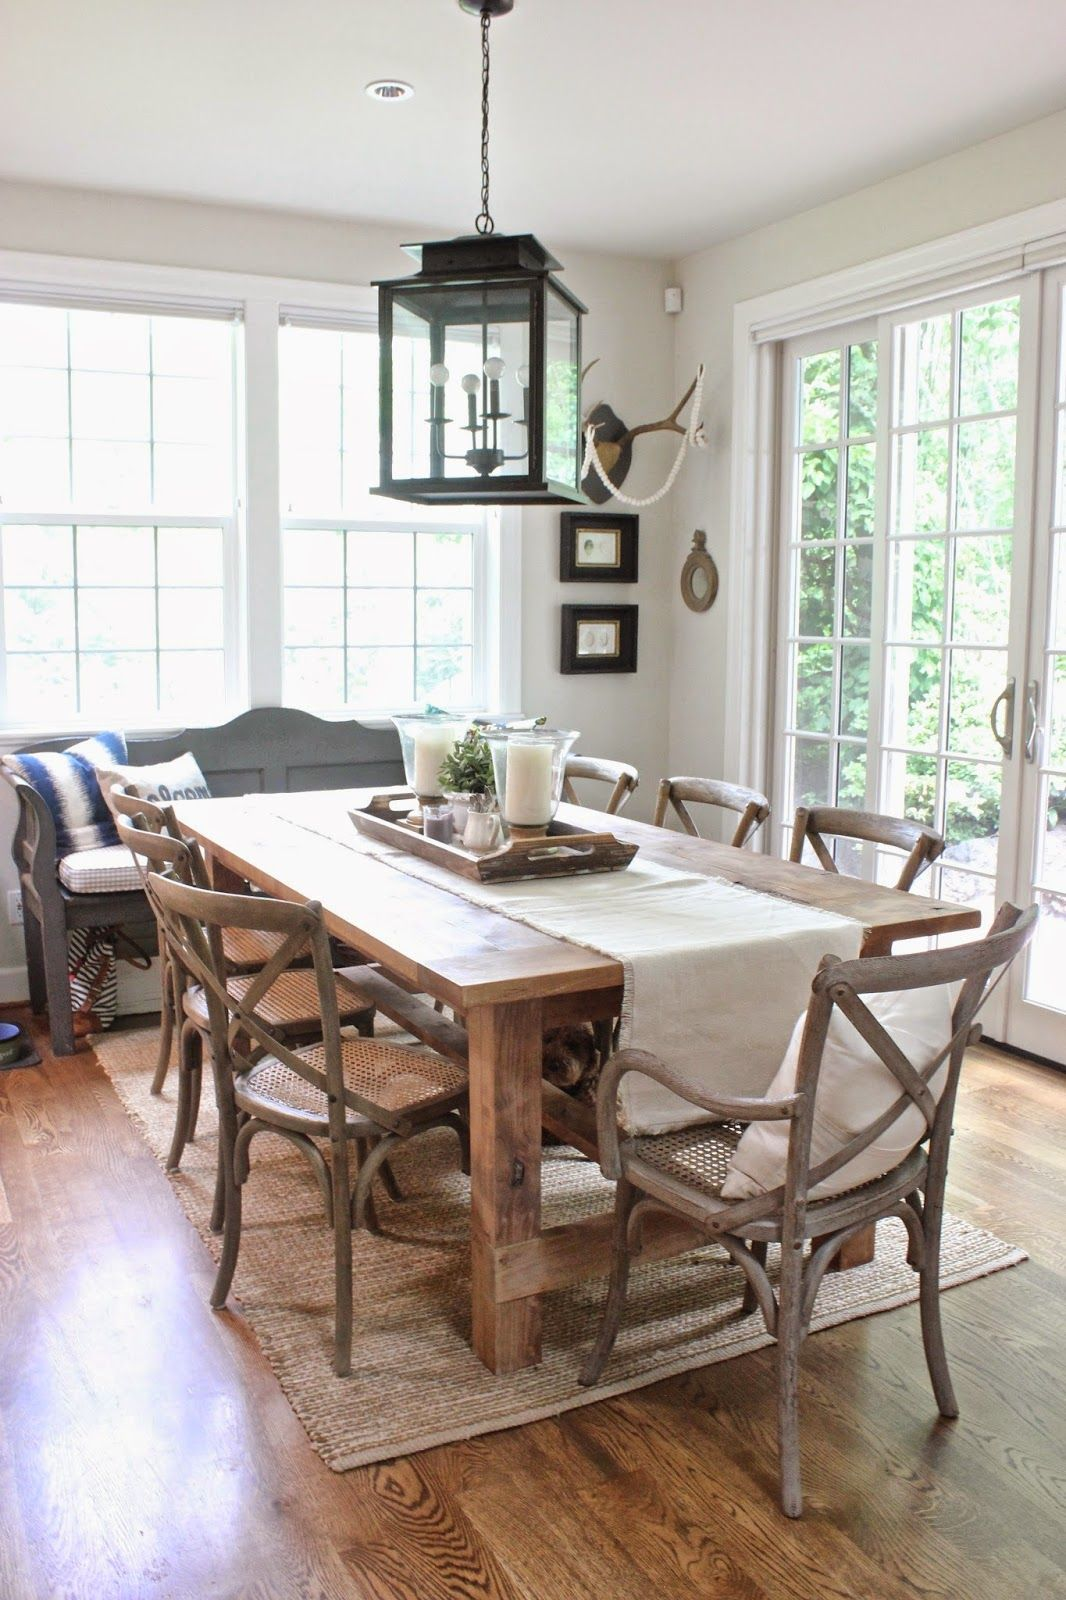 Forever Cottage Our Home The Spring Version Farmhouse Dining Room Table Dining Room Table Centerpieces Dining Room Table Decor